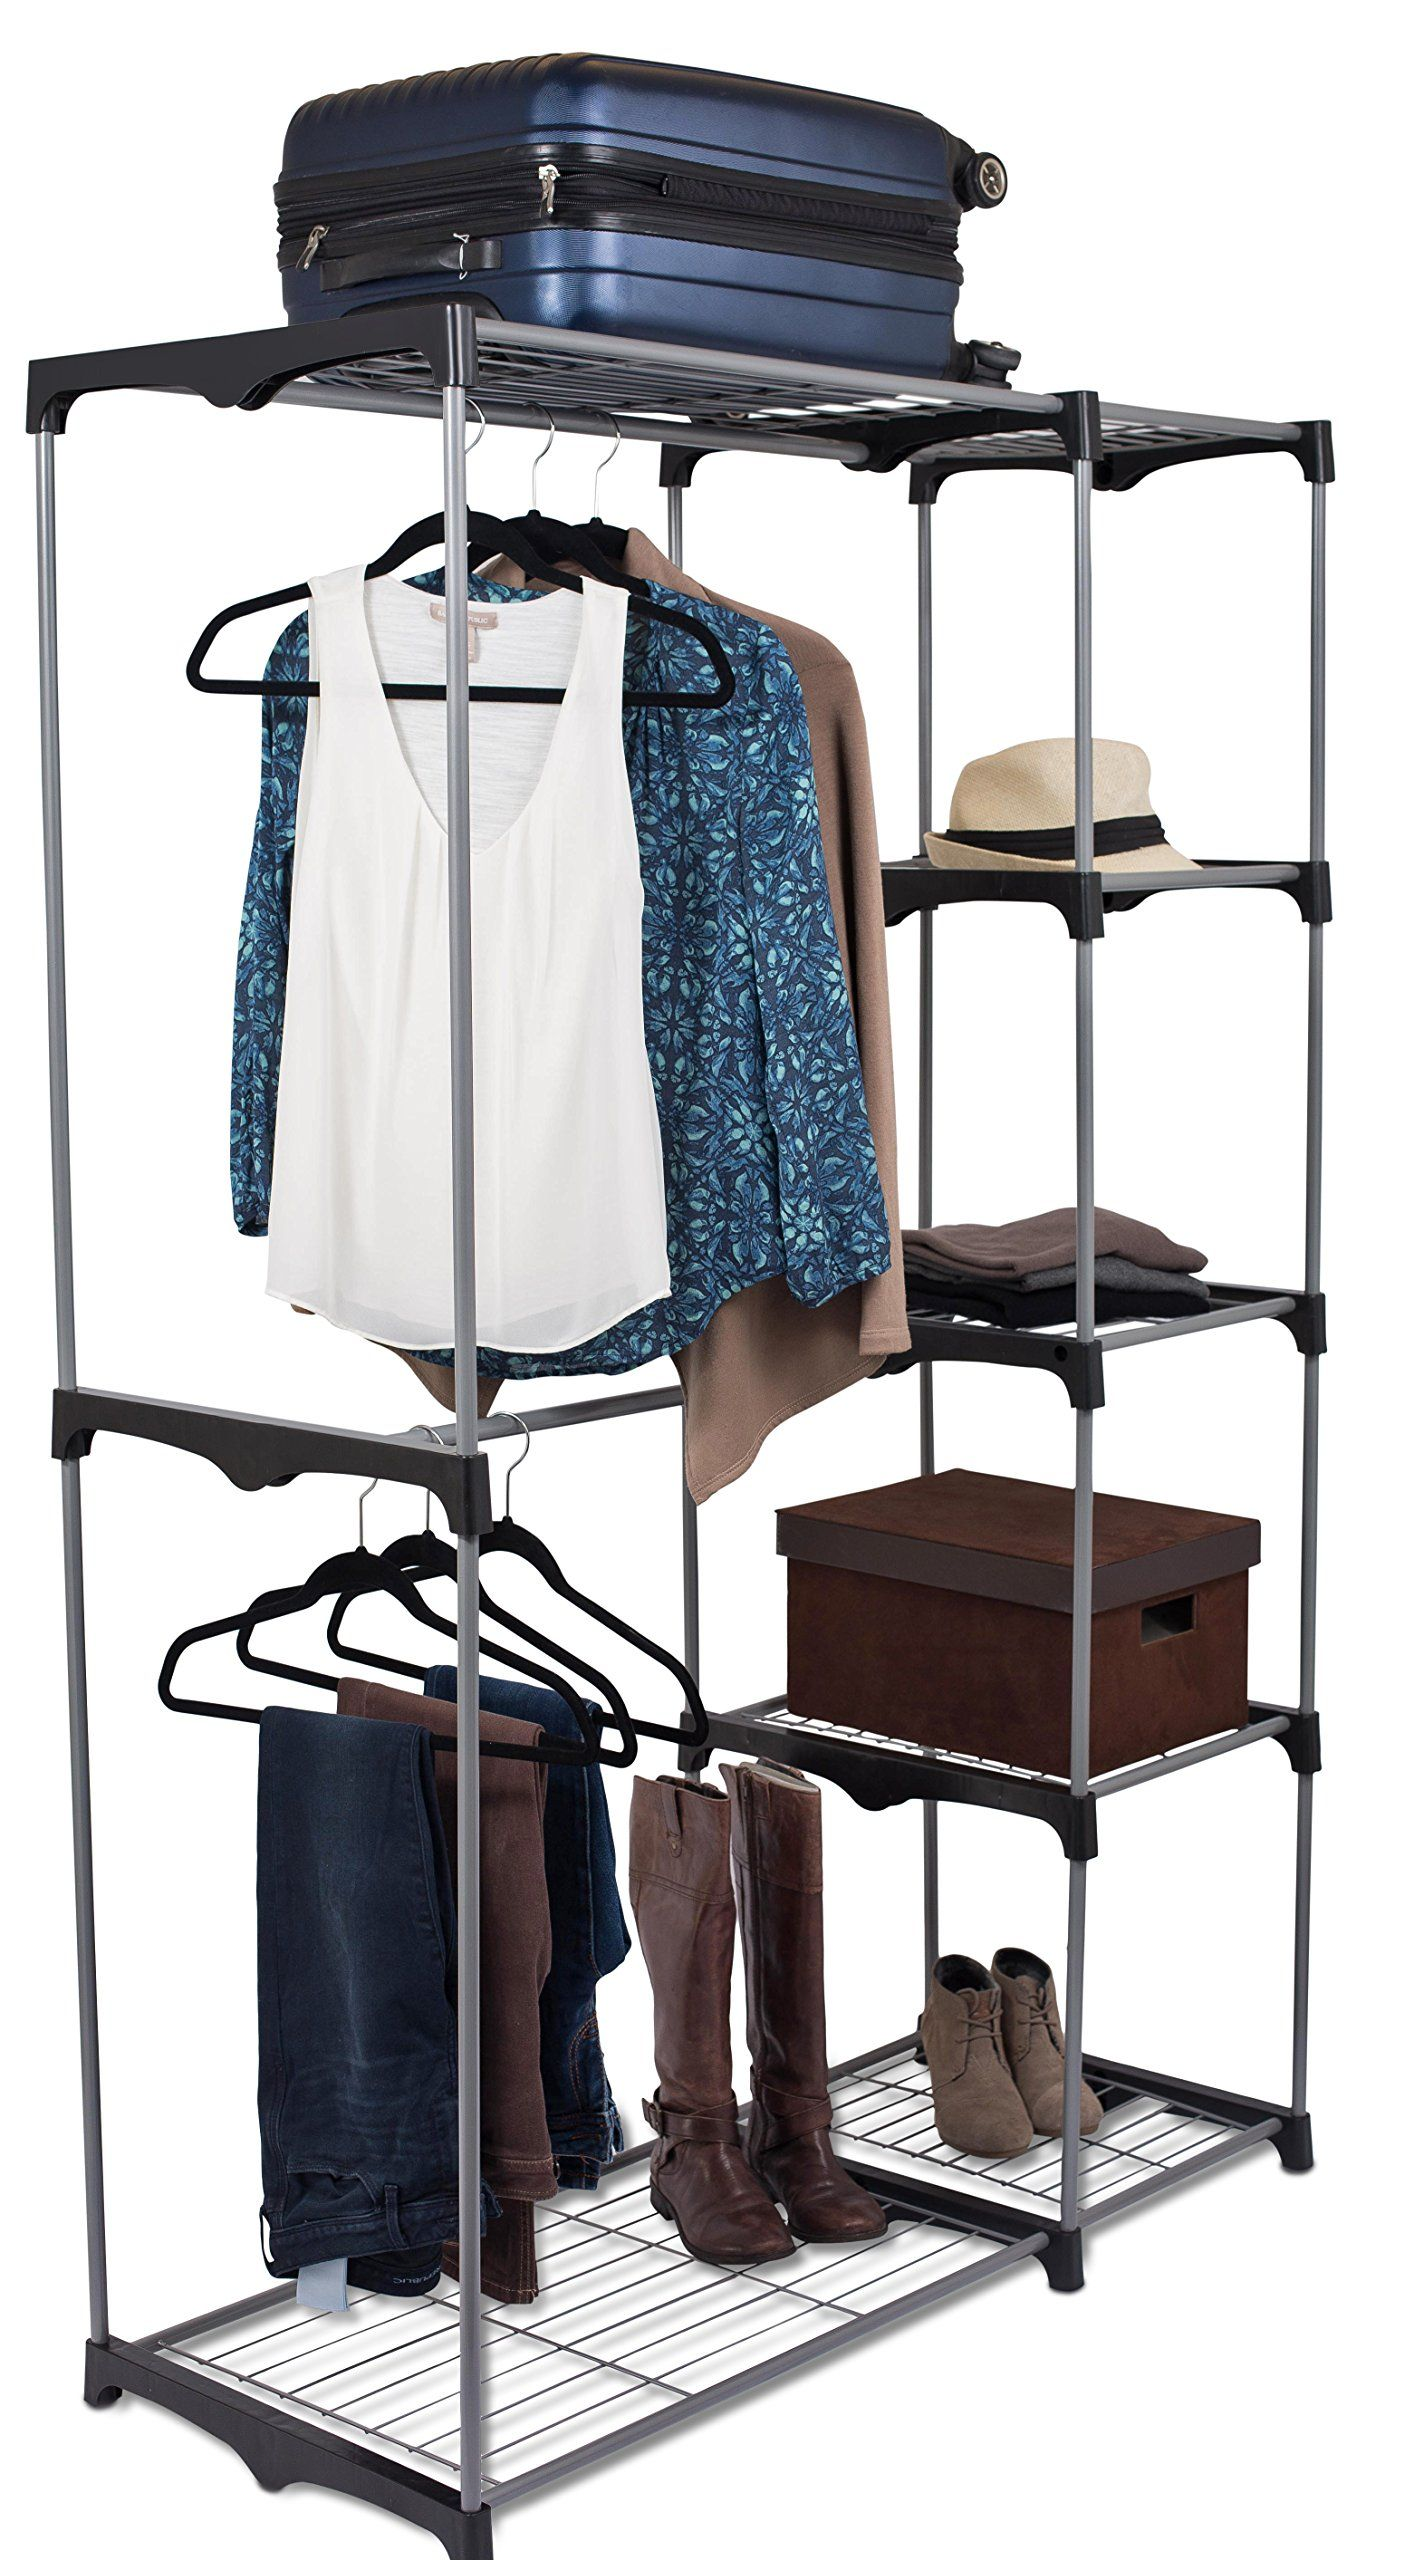 Internets Best Portable Closet Organizer | Double Rod Freestanding Garment  Rack | Multiple Shelving And Shoe